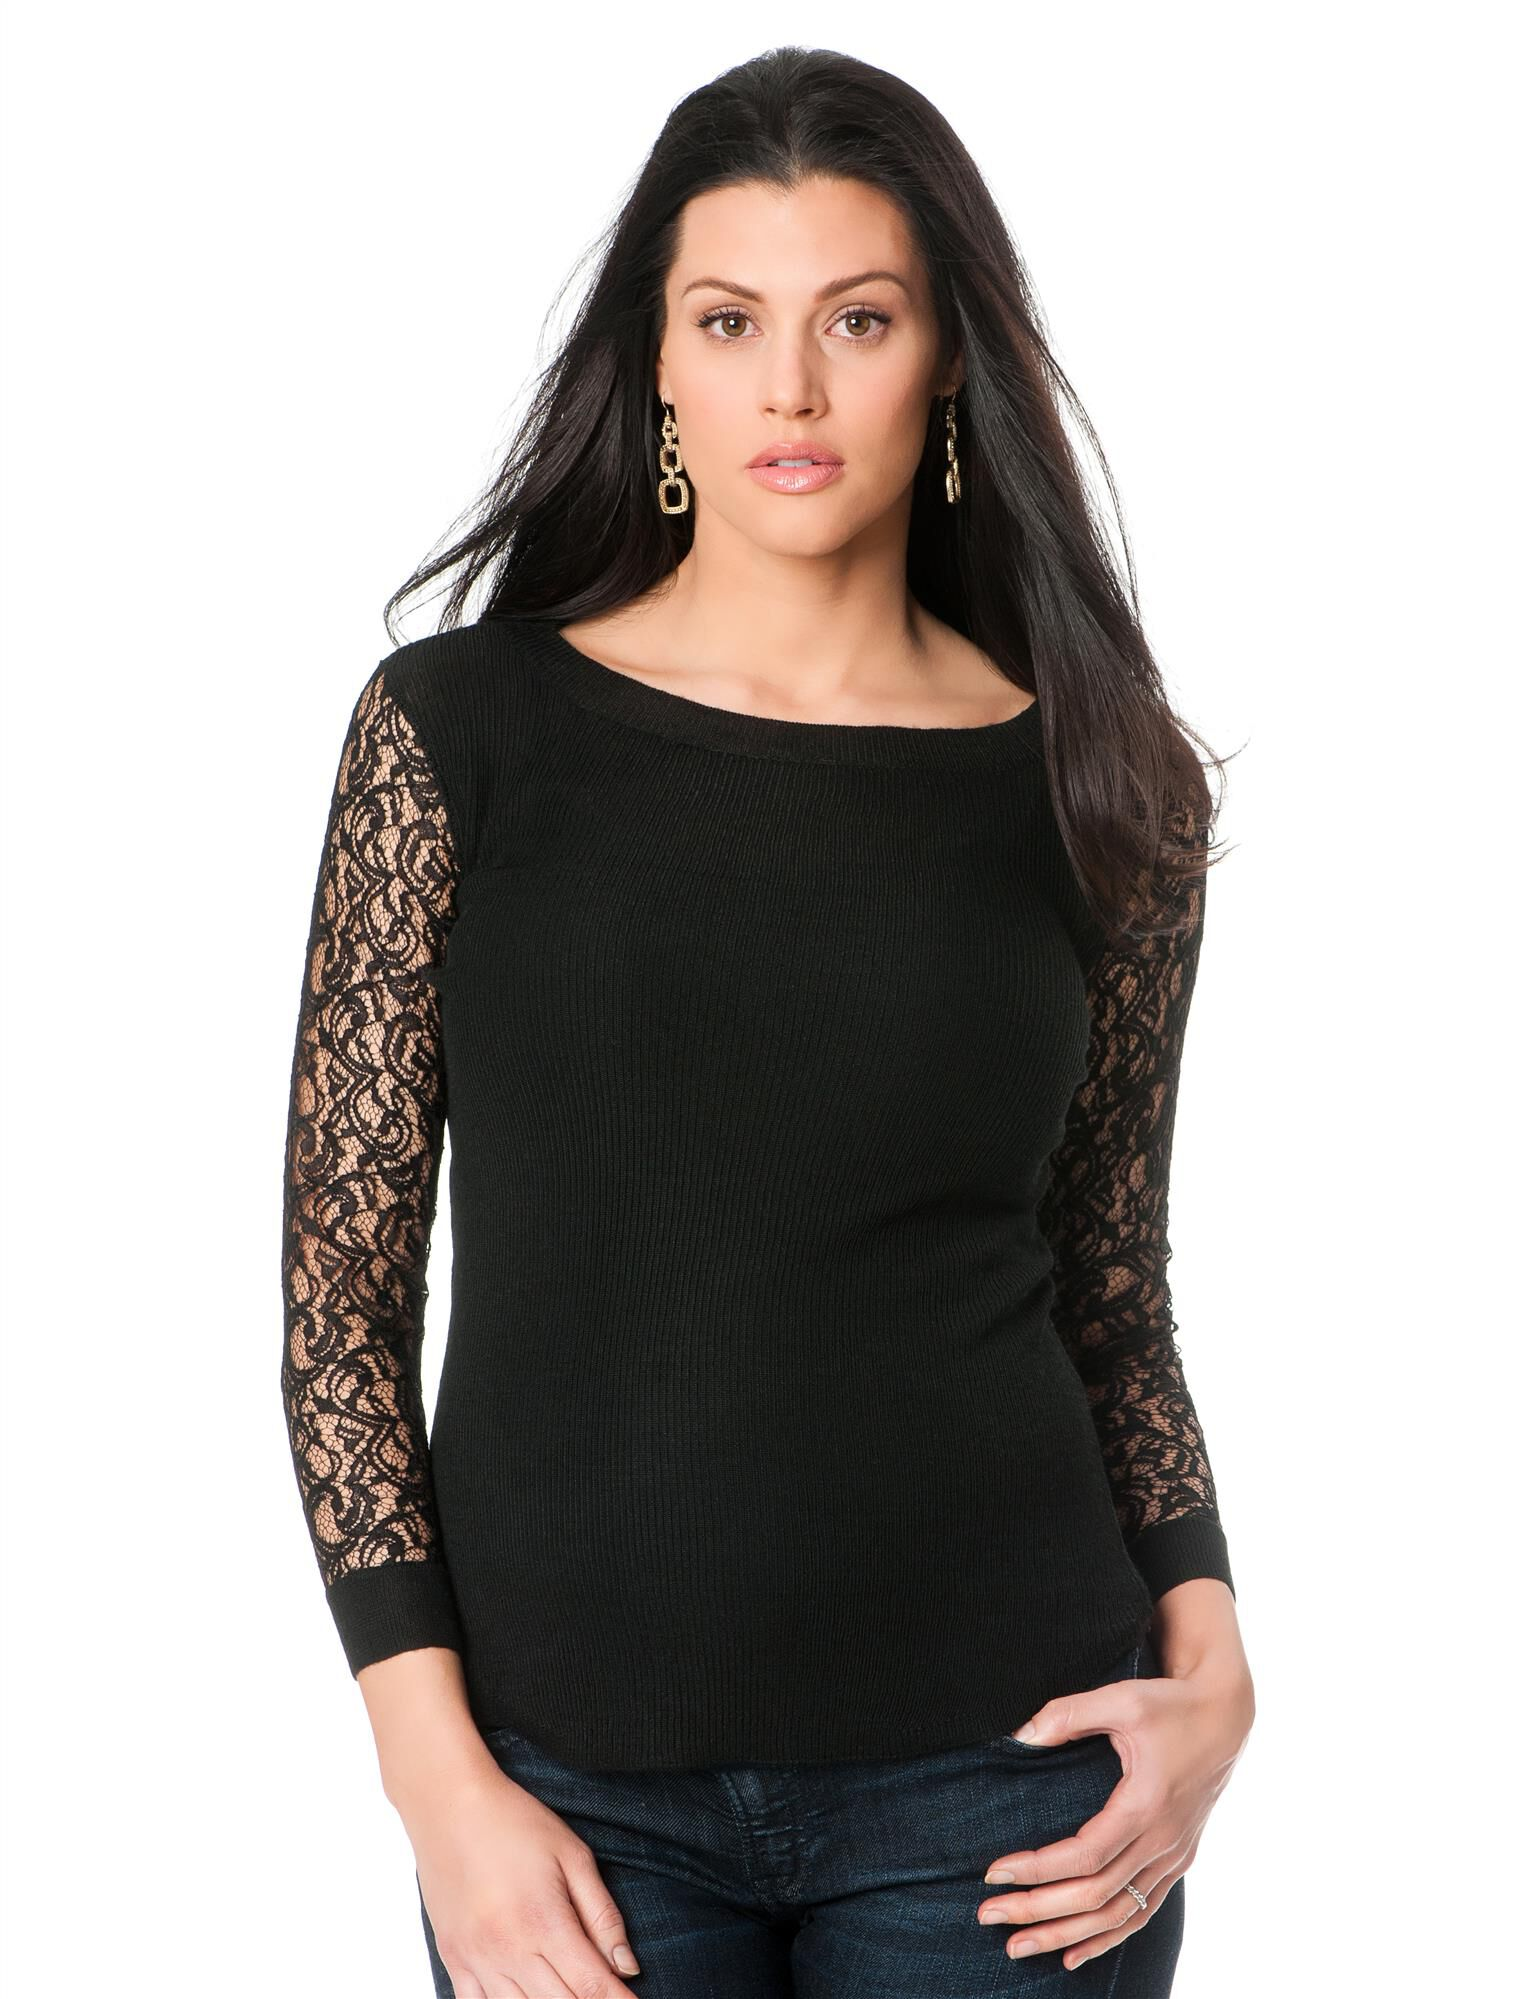 Lace Trim Maternity Sweater